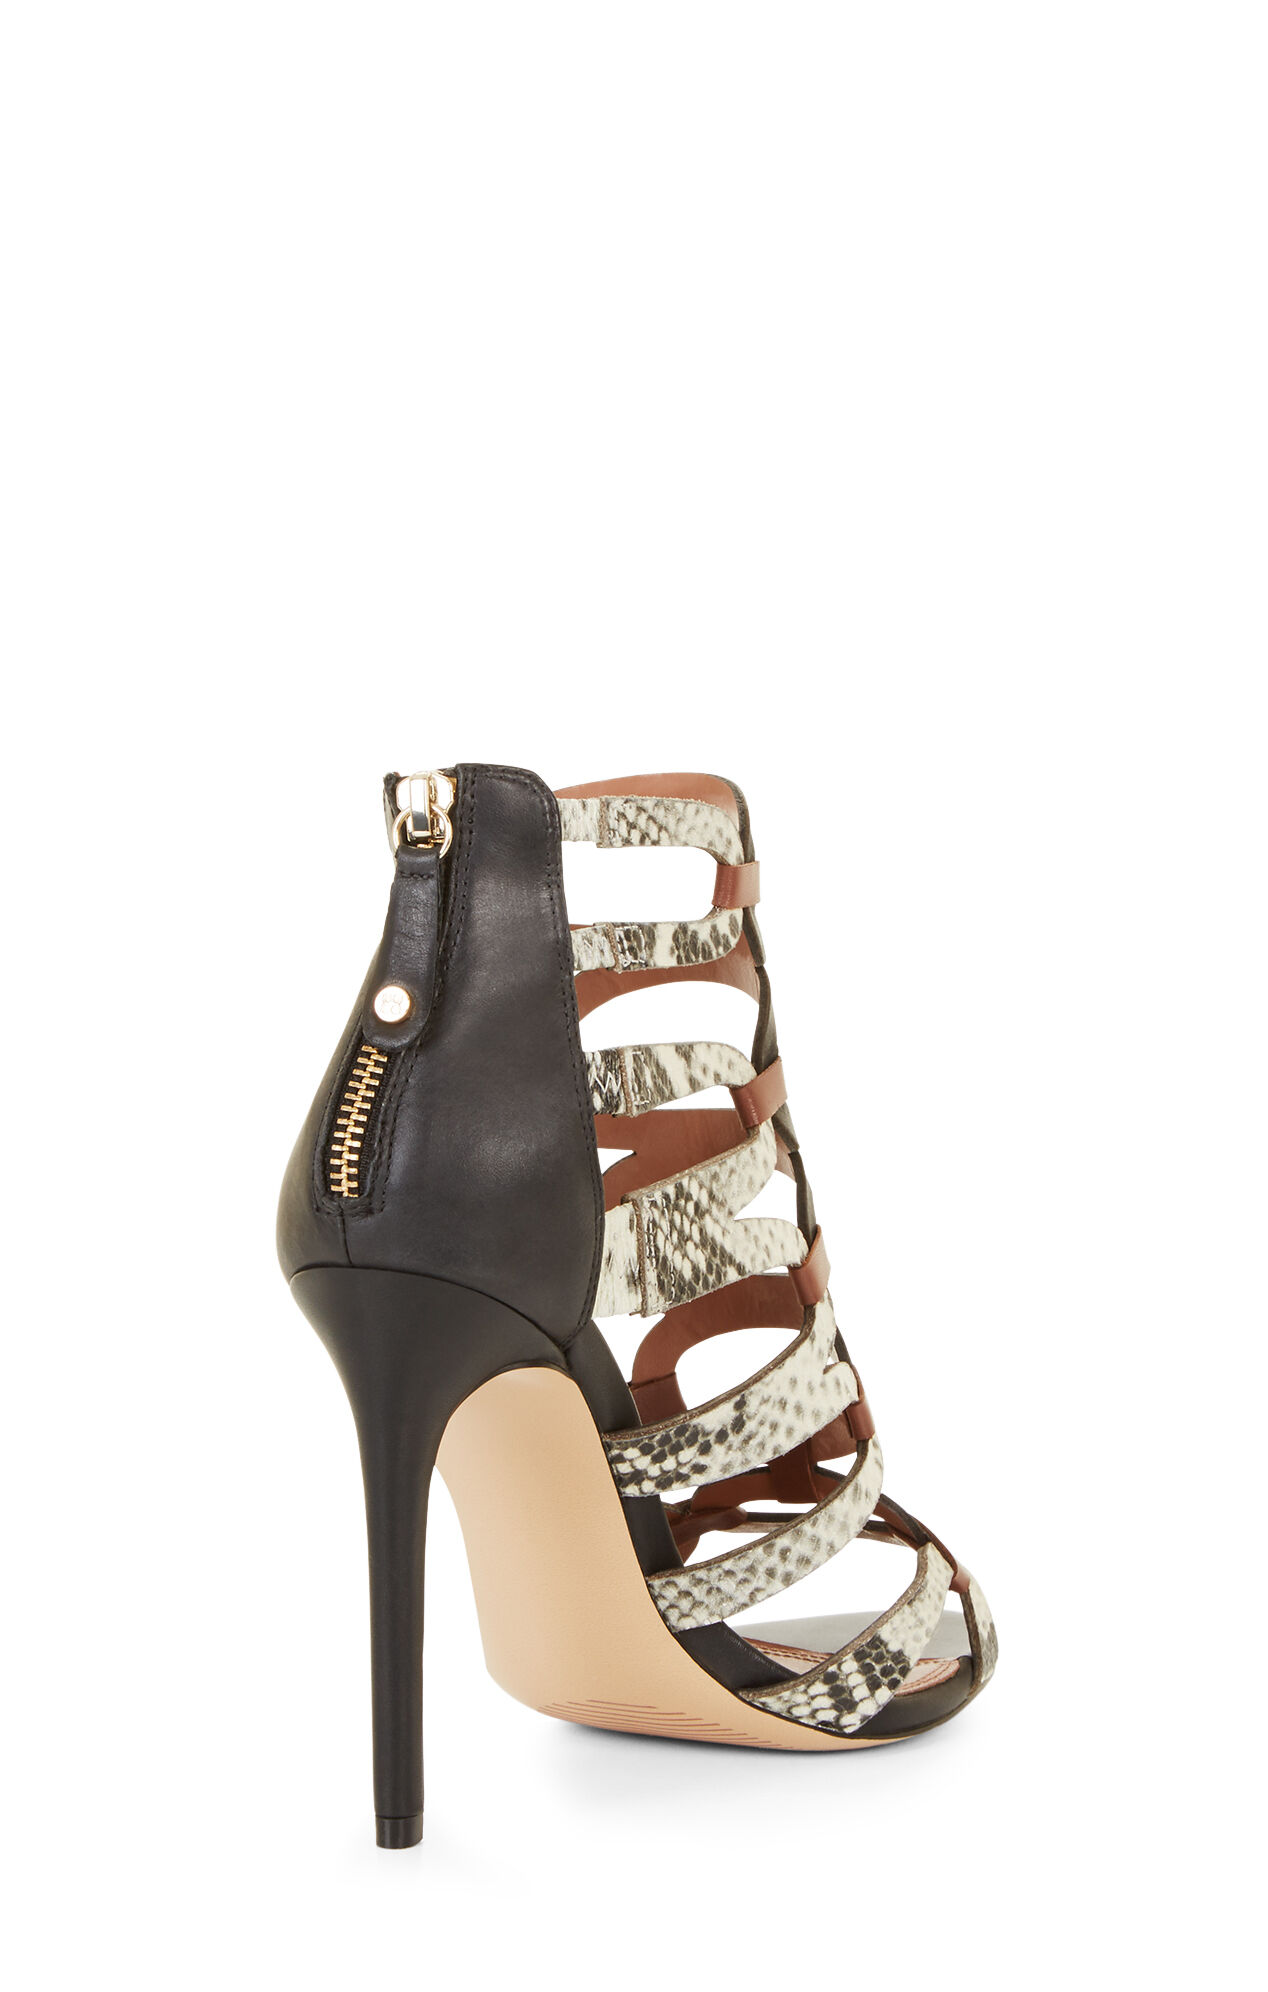 Valentia Python Leather Sandals